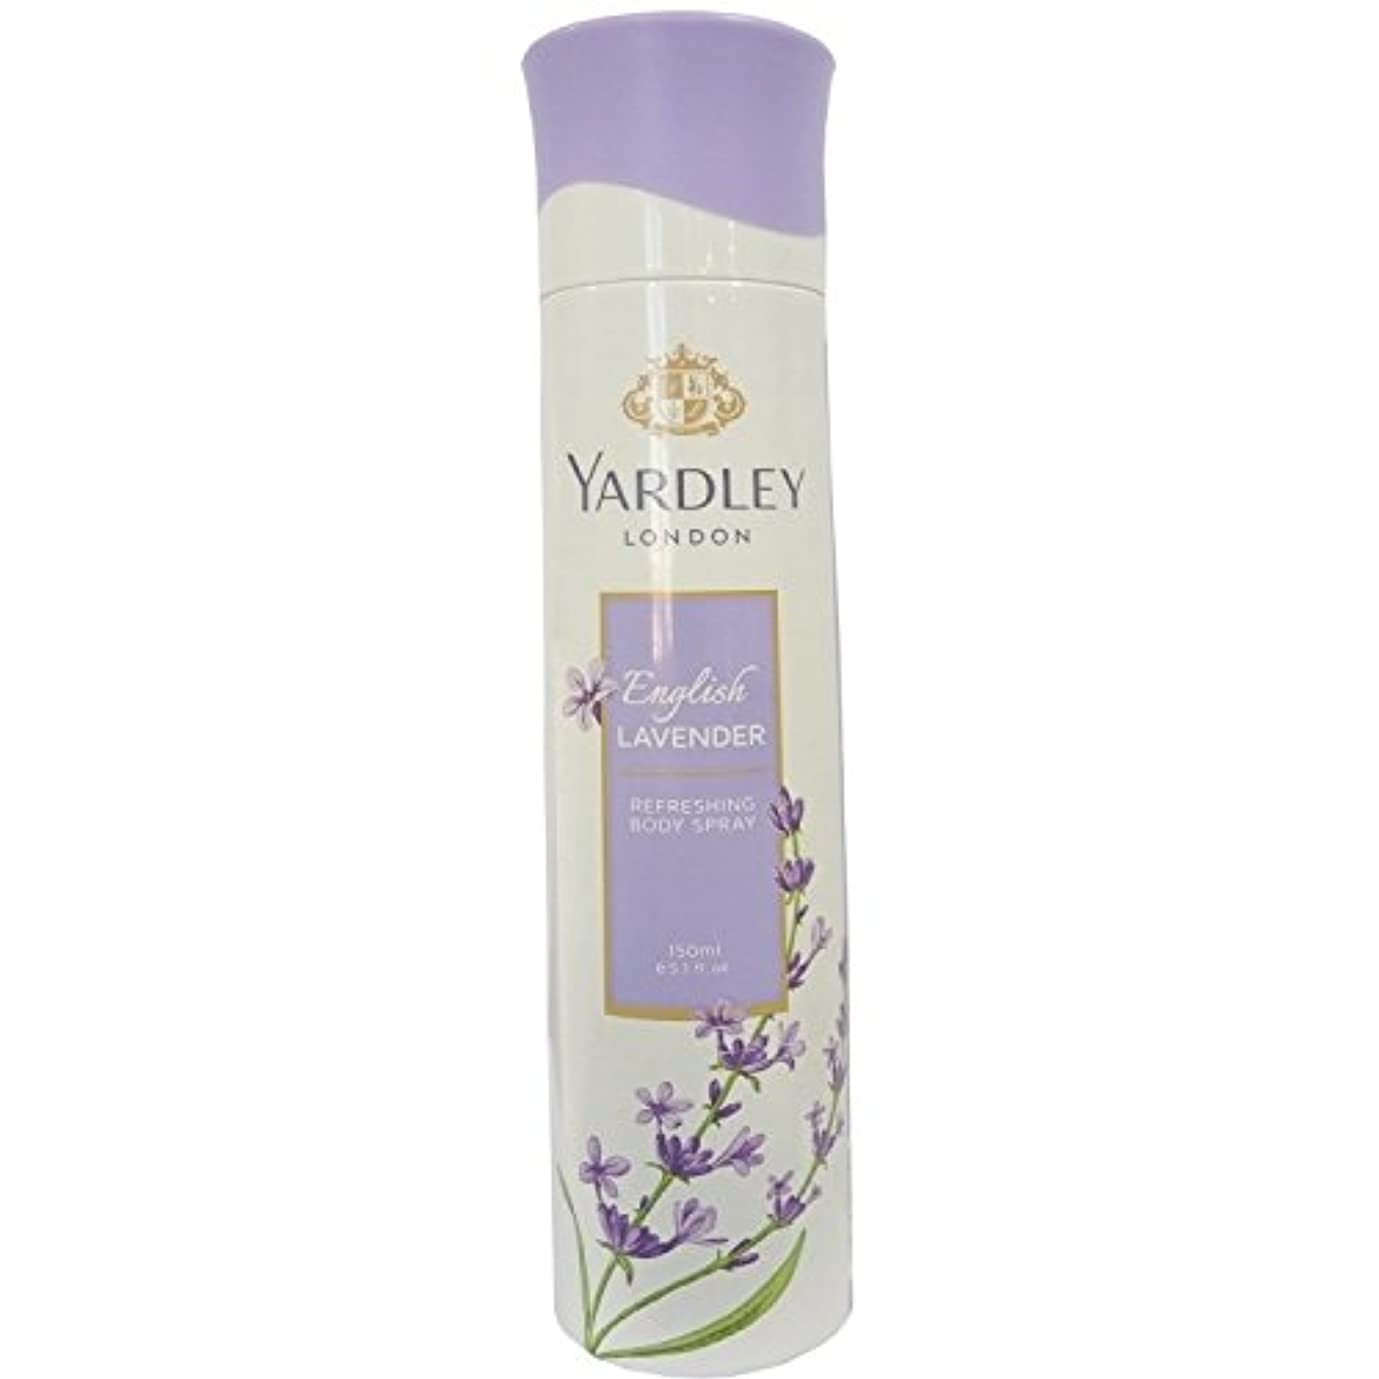 君主制おなかがすいた書士Yardley London Refreshing Body Spray English Lavender 150ml